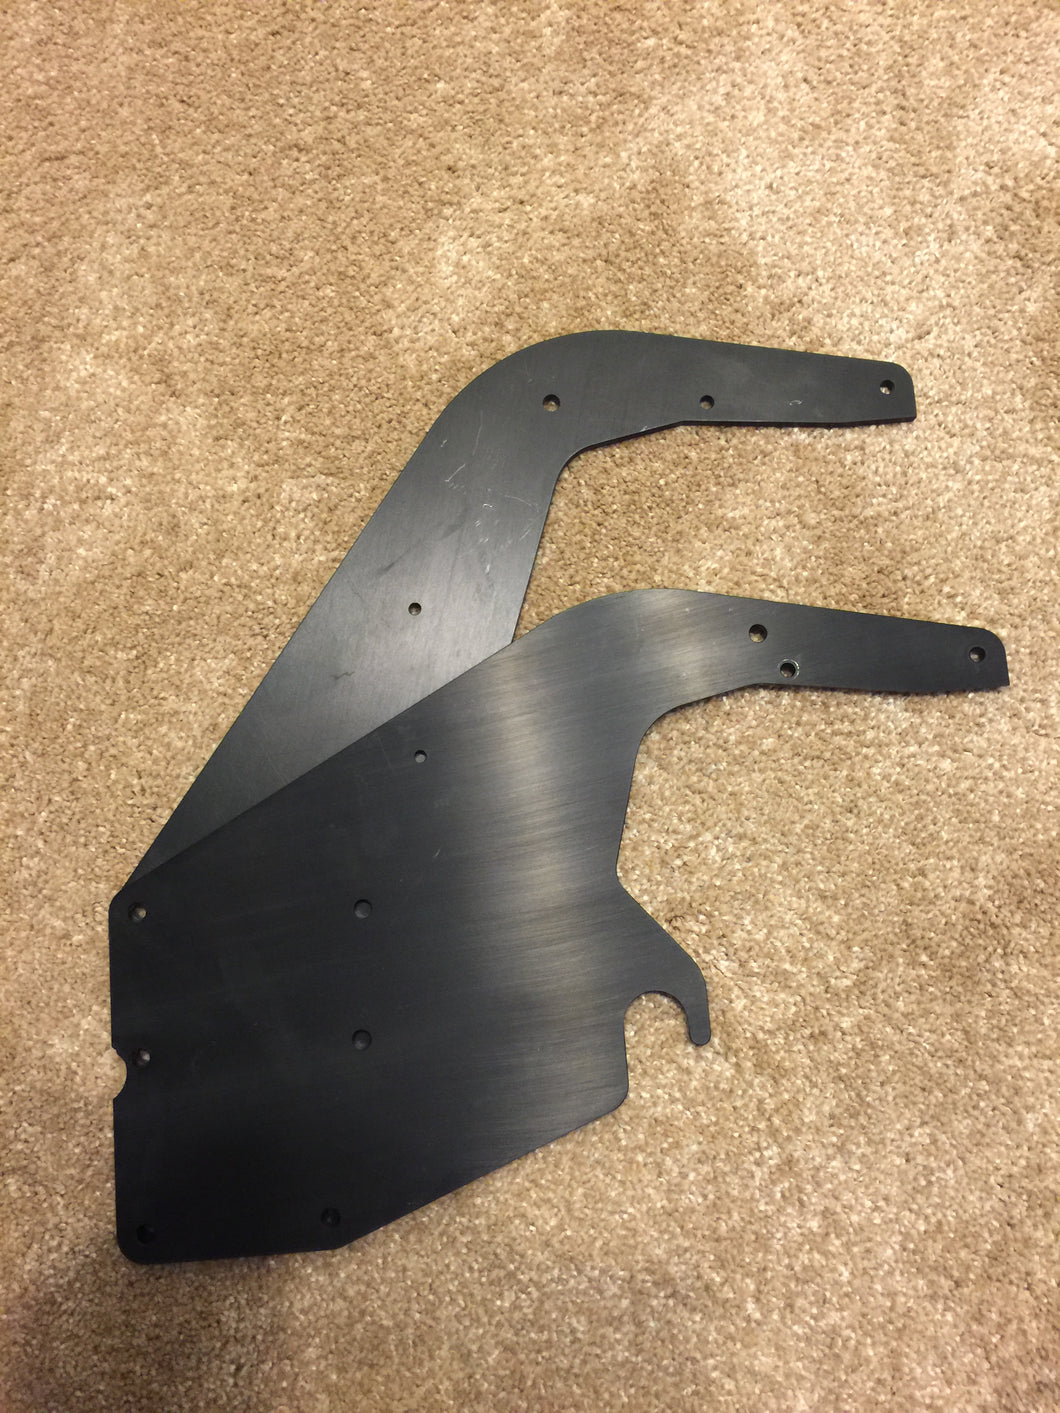 Vhe Vd Rear Wing Swan Neck Mount Plates